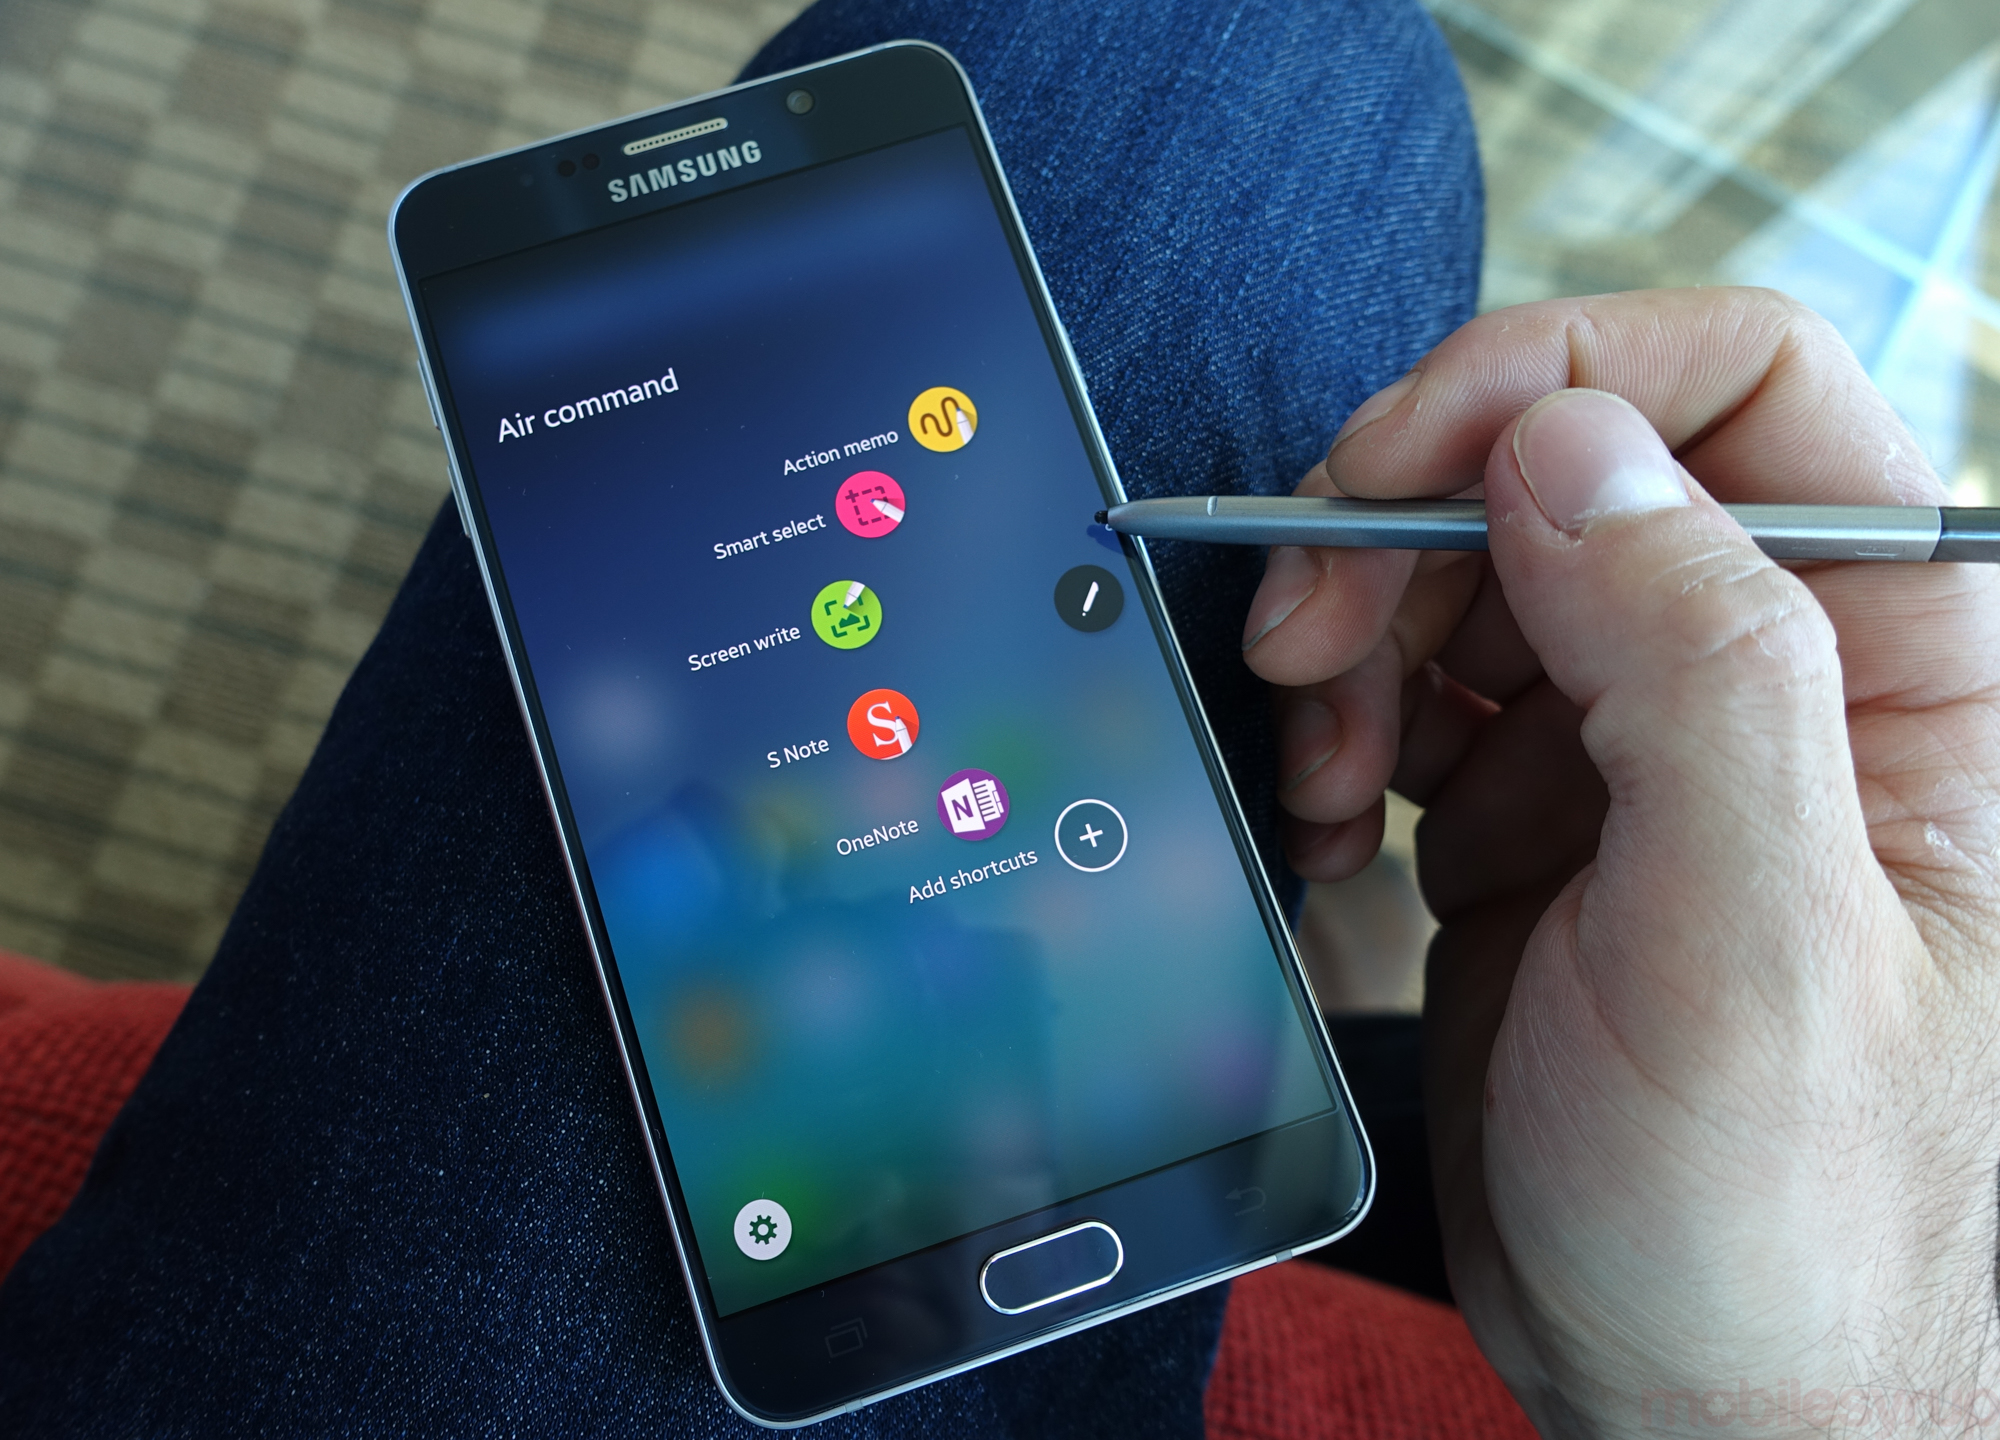 samsunggalaxynote5review-01033